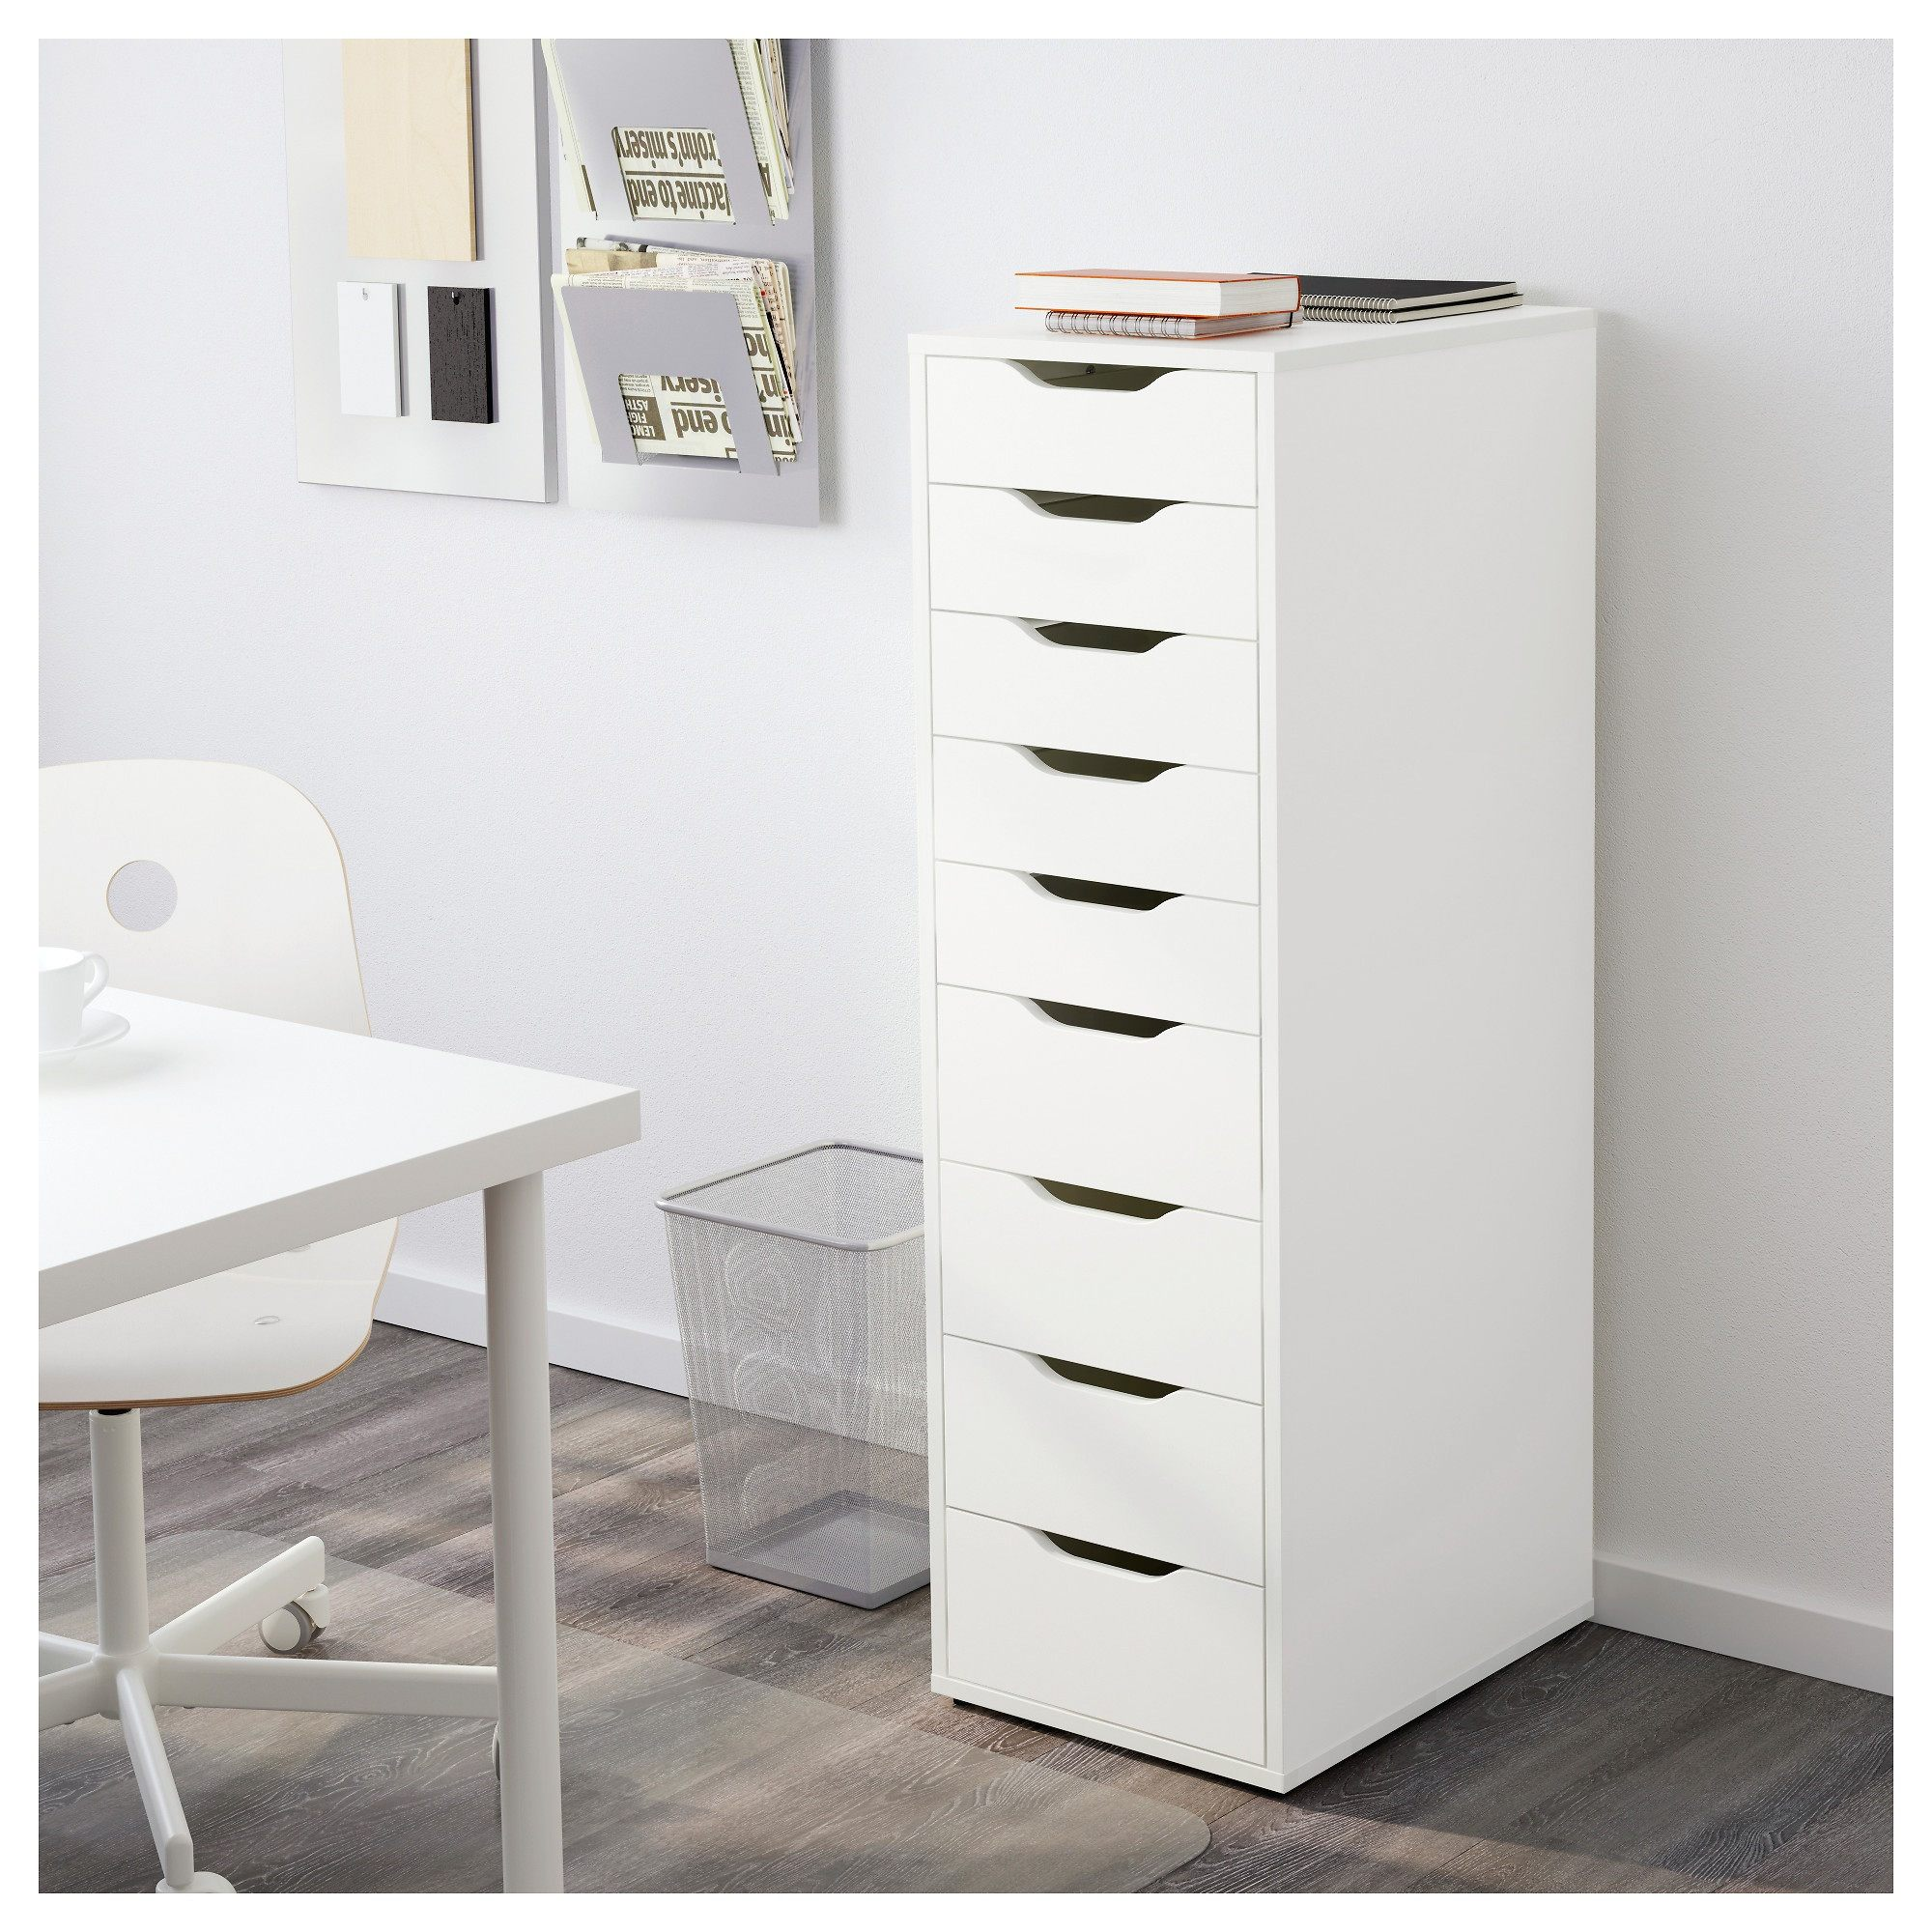 Lit Bebe Luxe Élégant Chambre Ikea Bebe Awesome Ikea Armoire Bebe Luxe Armoire with